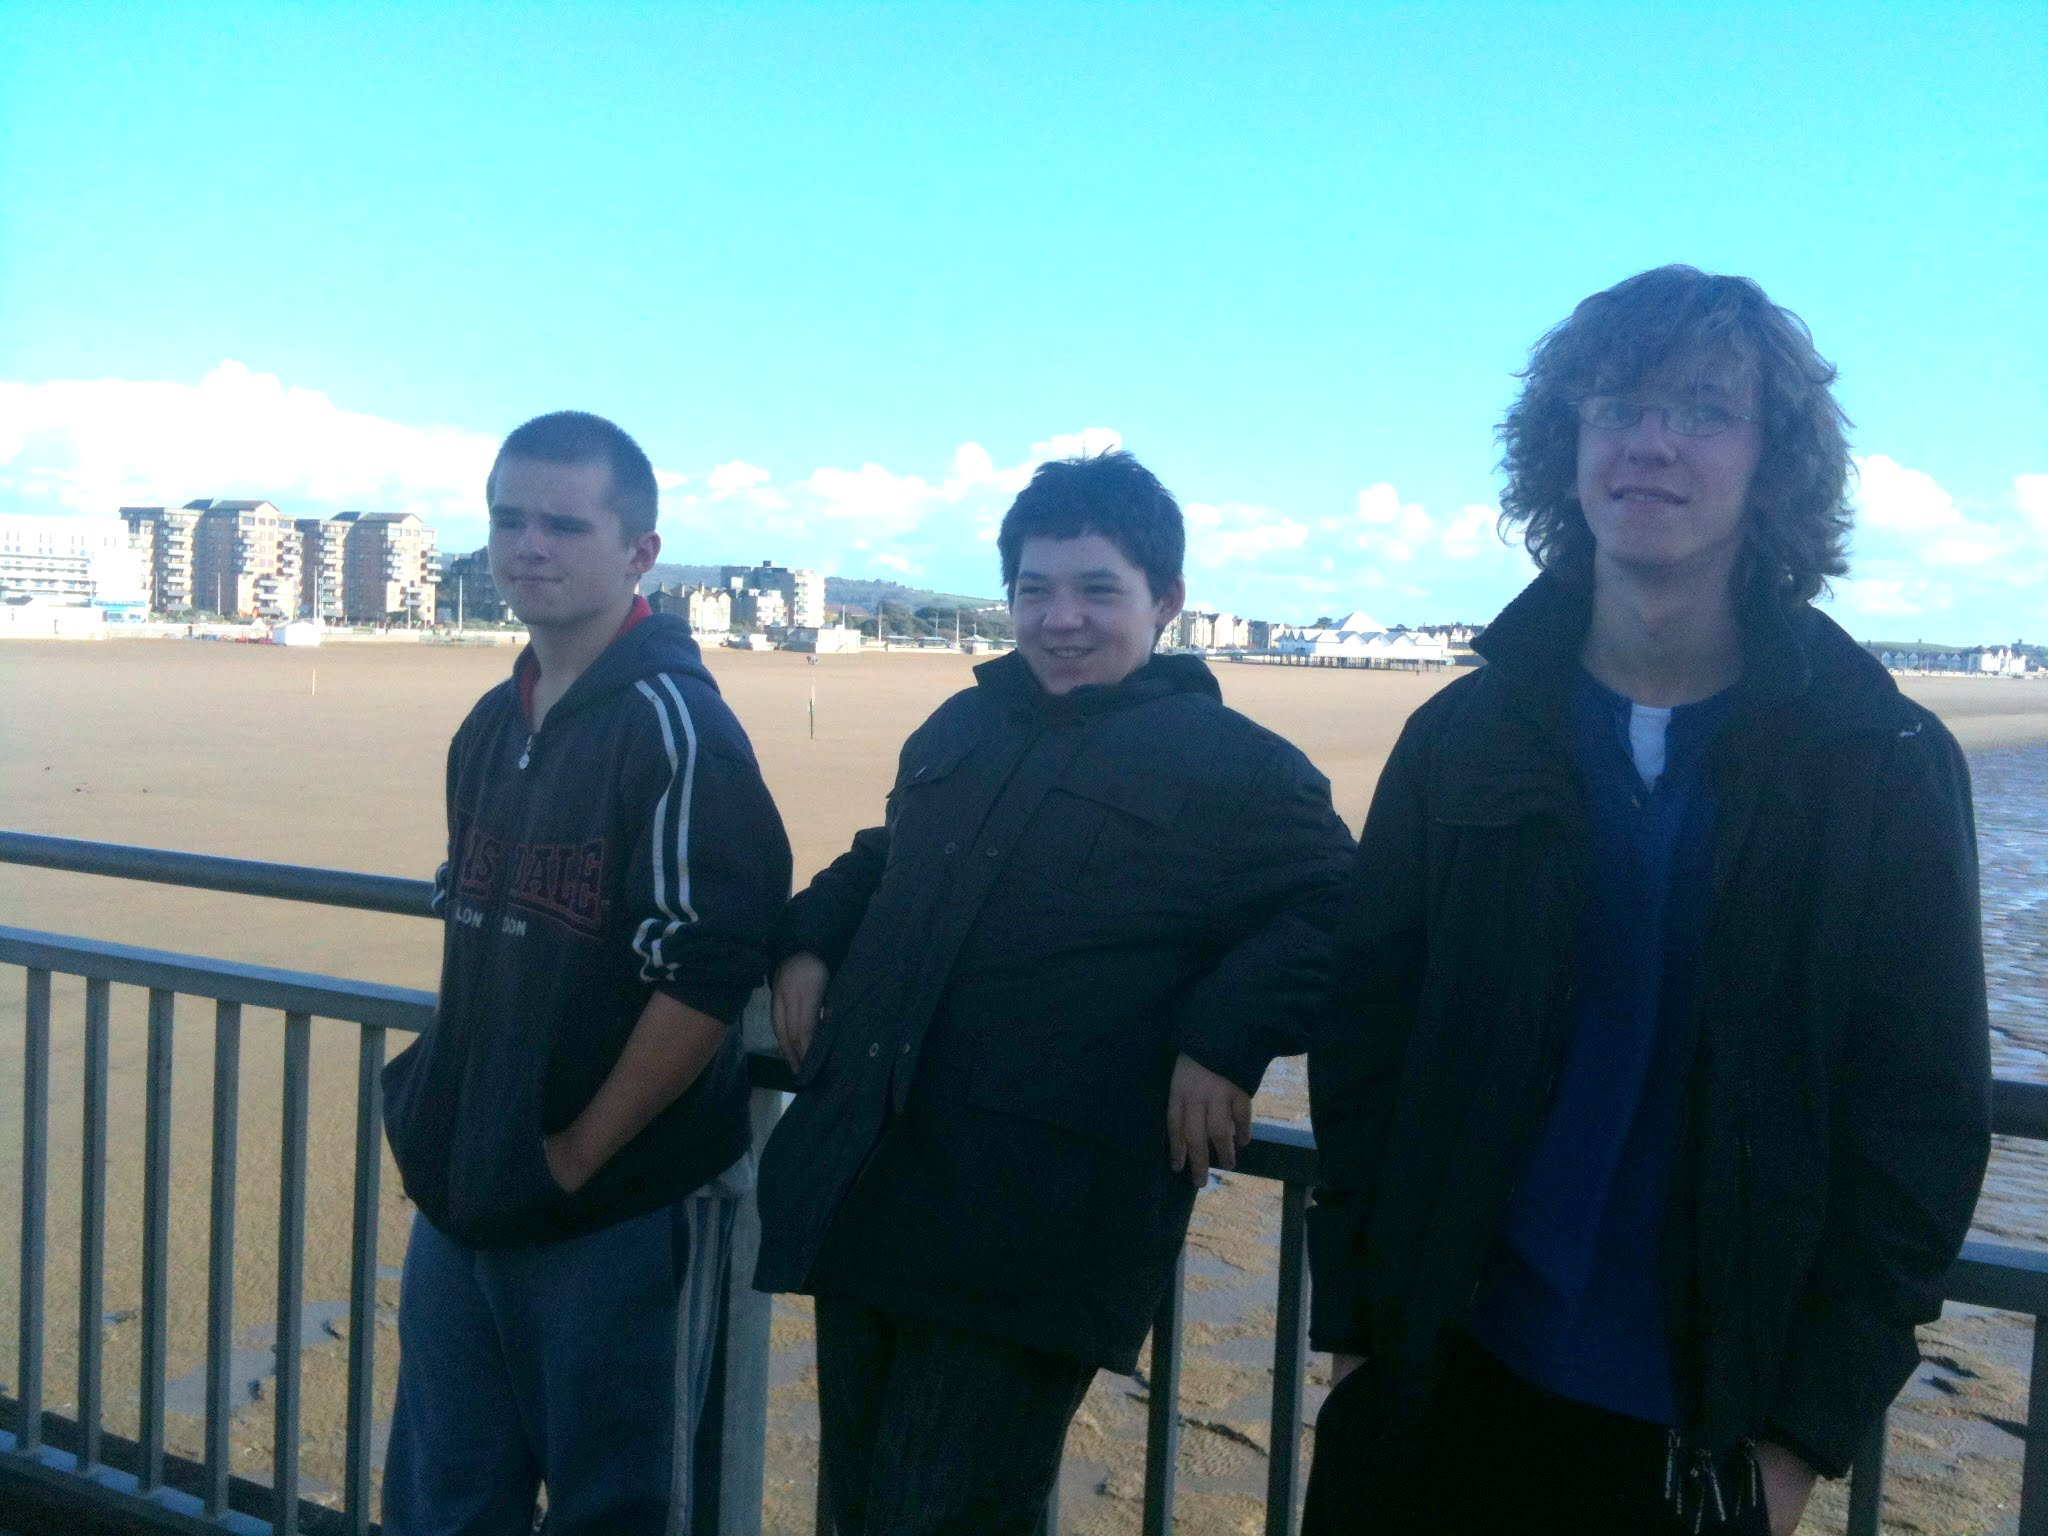 After spending up, we walked back down the pier, avoiding the seagulls!